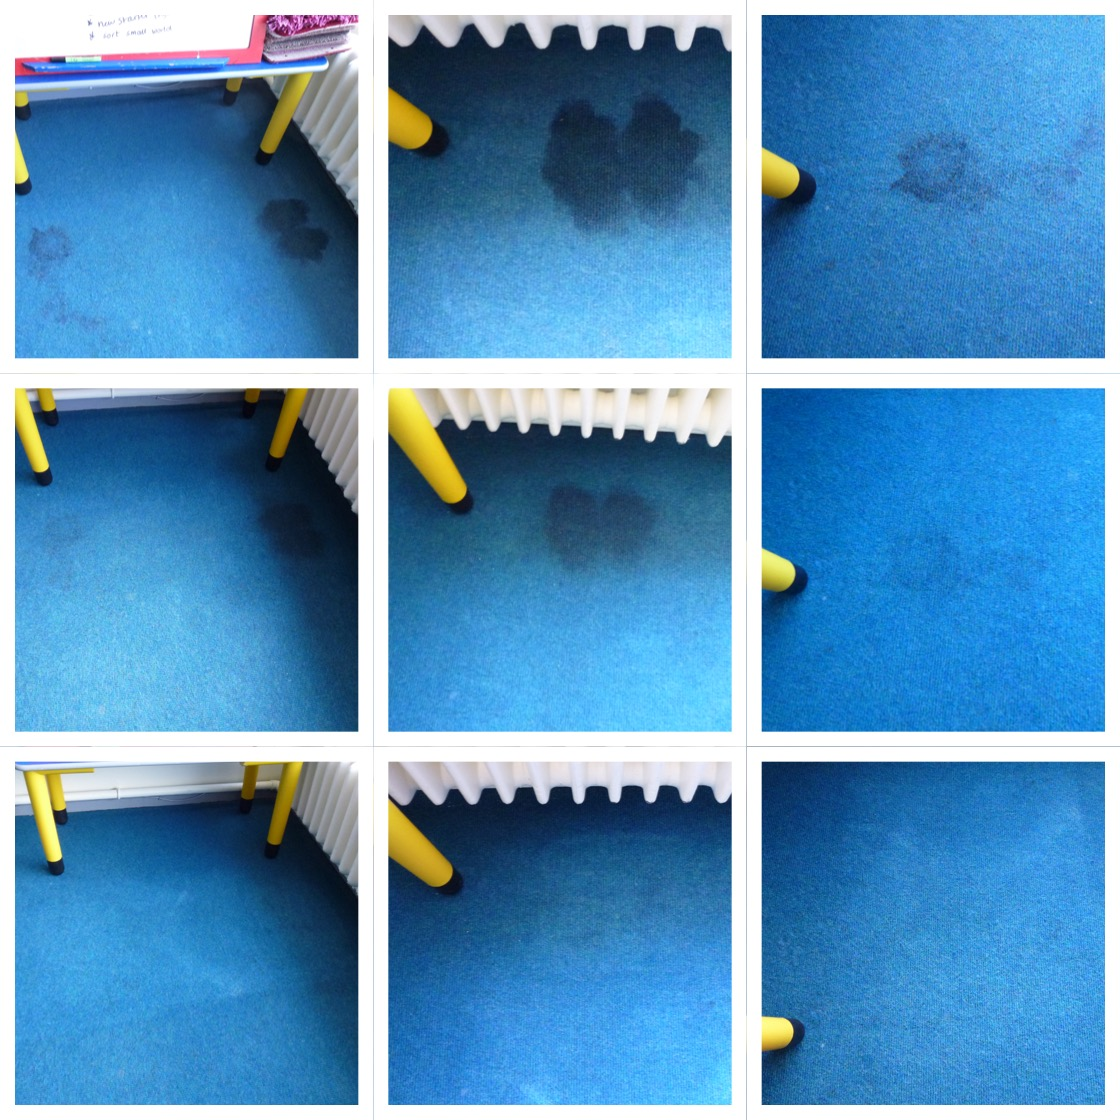 Stain Removal. Before, Pre-spray and dwell time and After